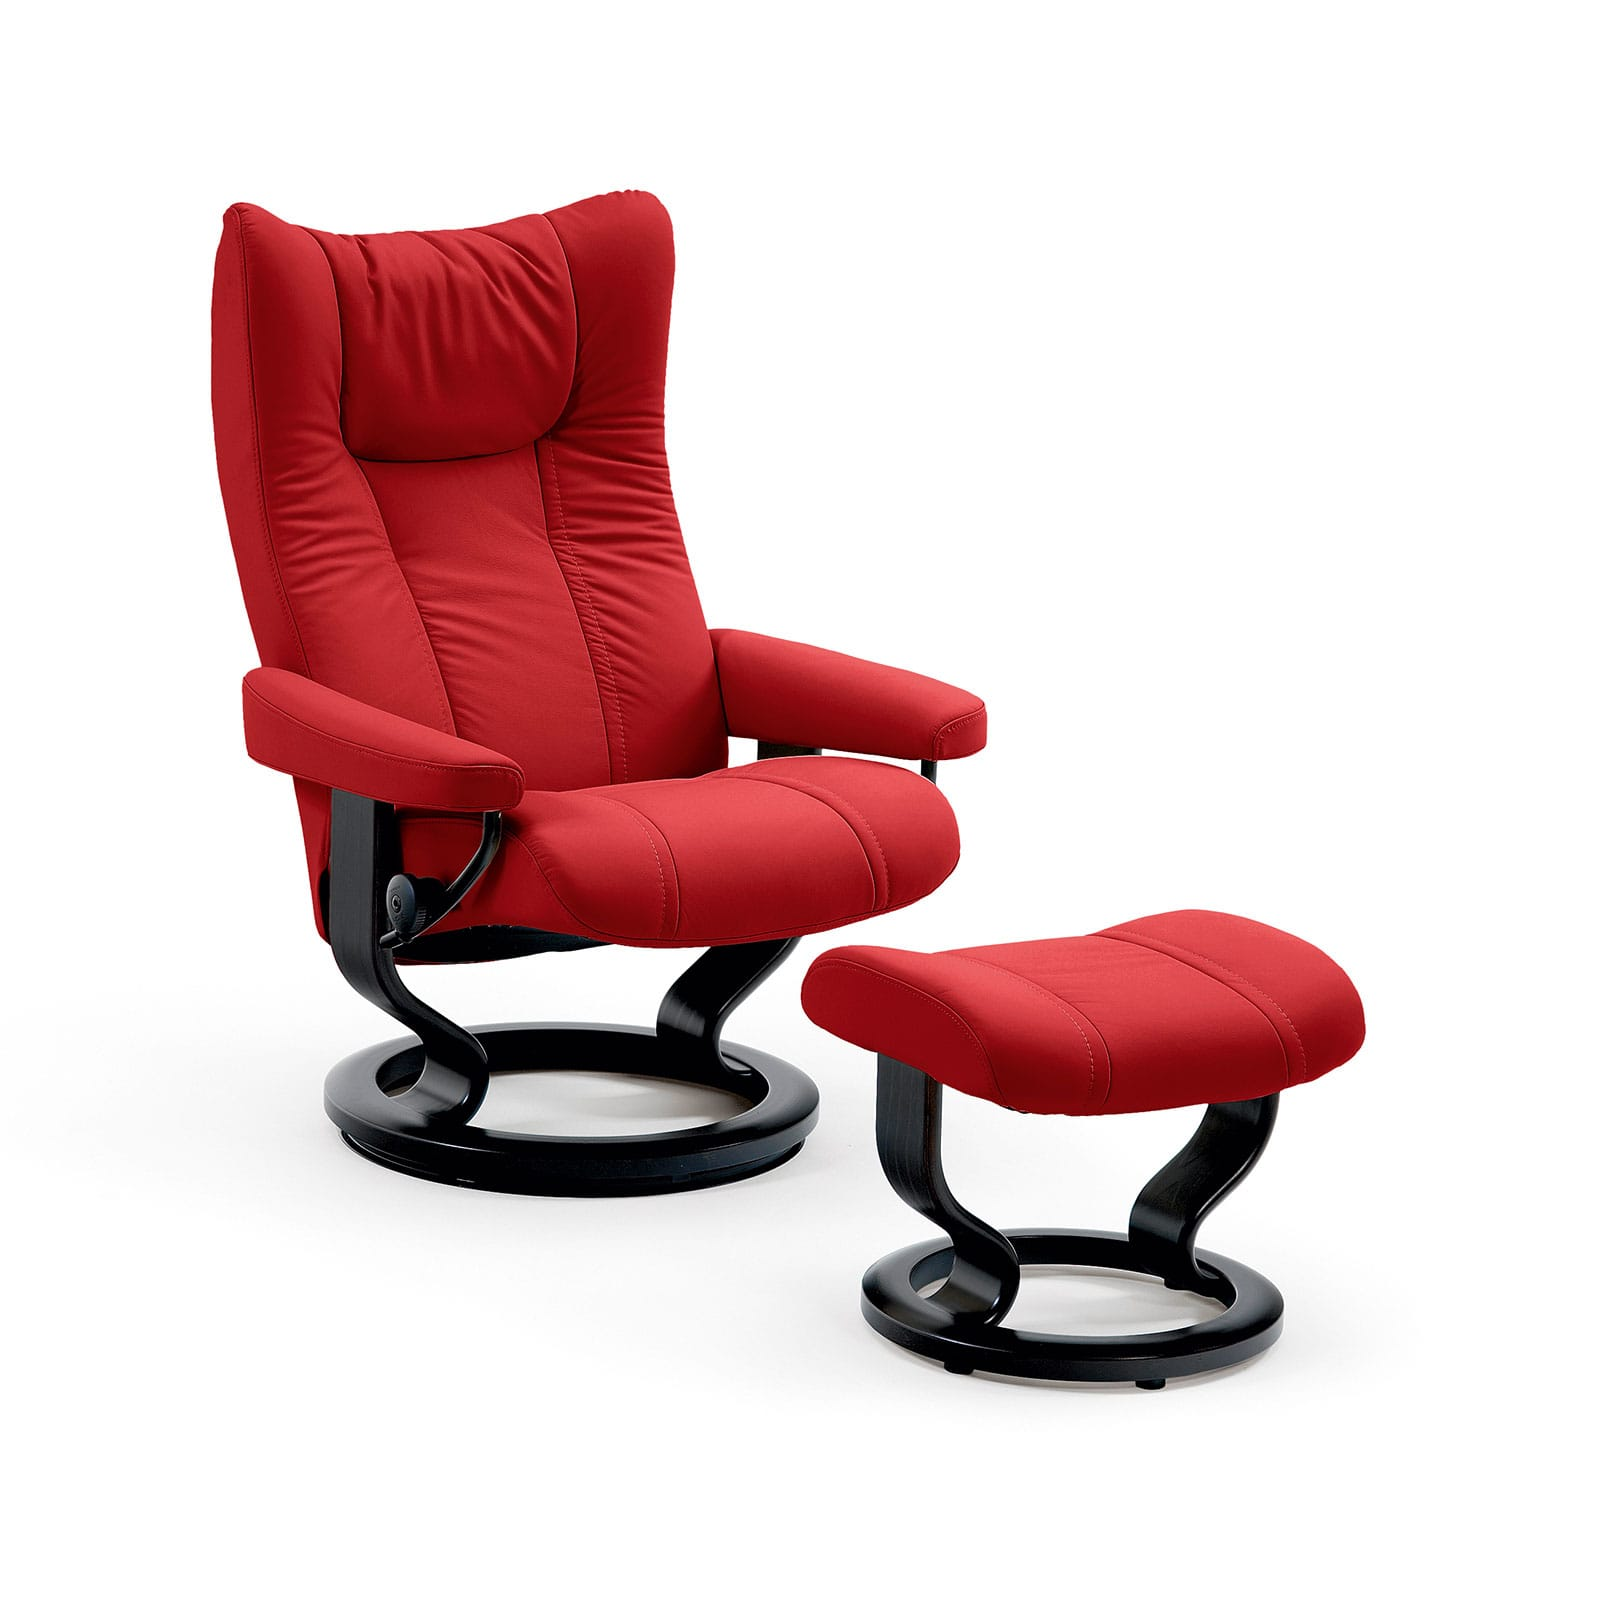 Sessel Leder Rot Stressless Sessel Wing Leder Batick Chilli Red Mit Hocker